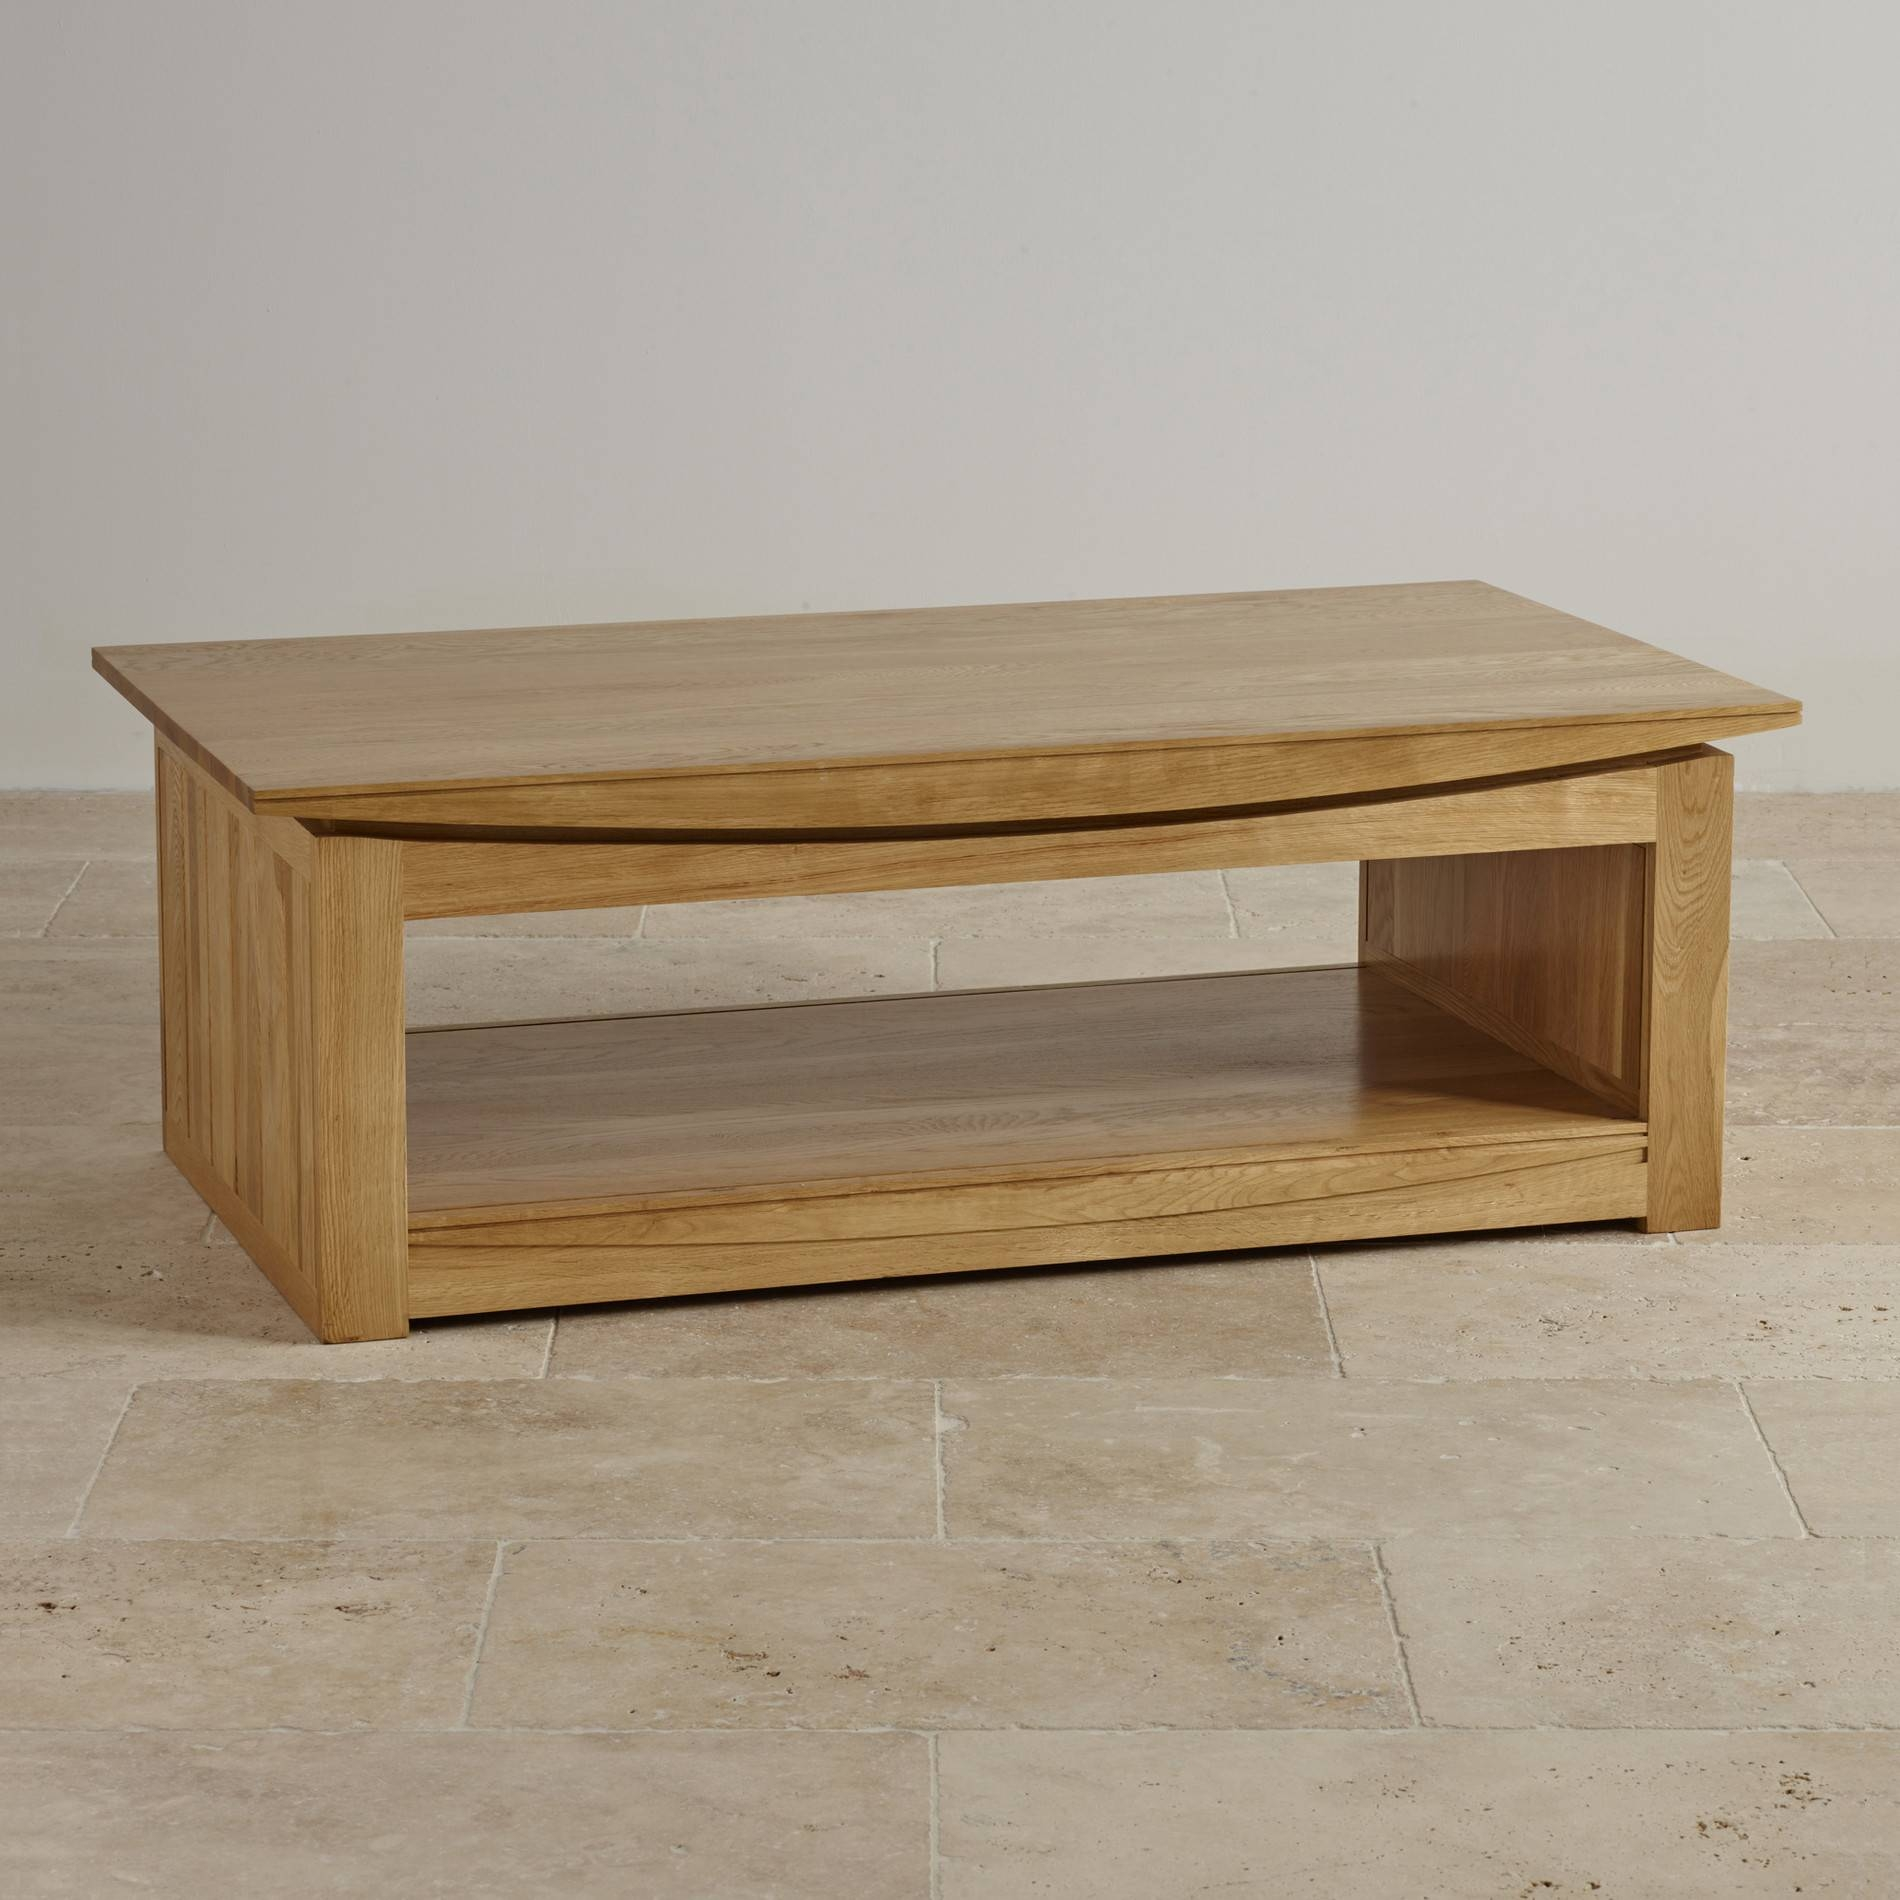 Tokyo Natural Solid Oak Large Coffee Tableoak Furniture Land pertaining to Oak Furniture Coffee Tables (Image 14 of 15)